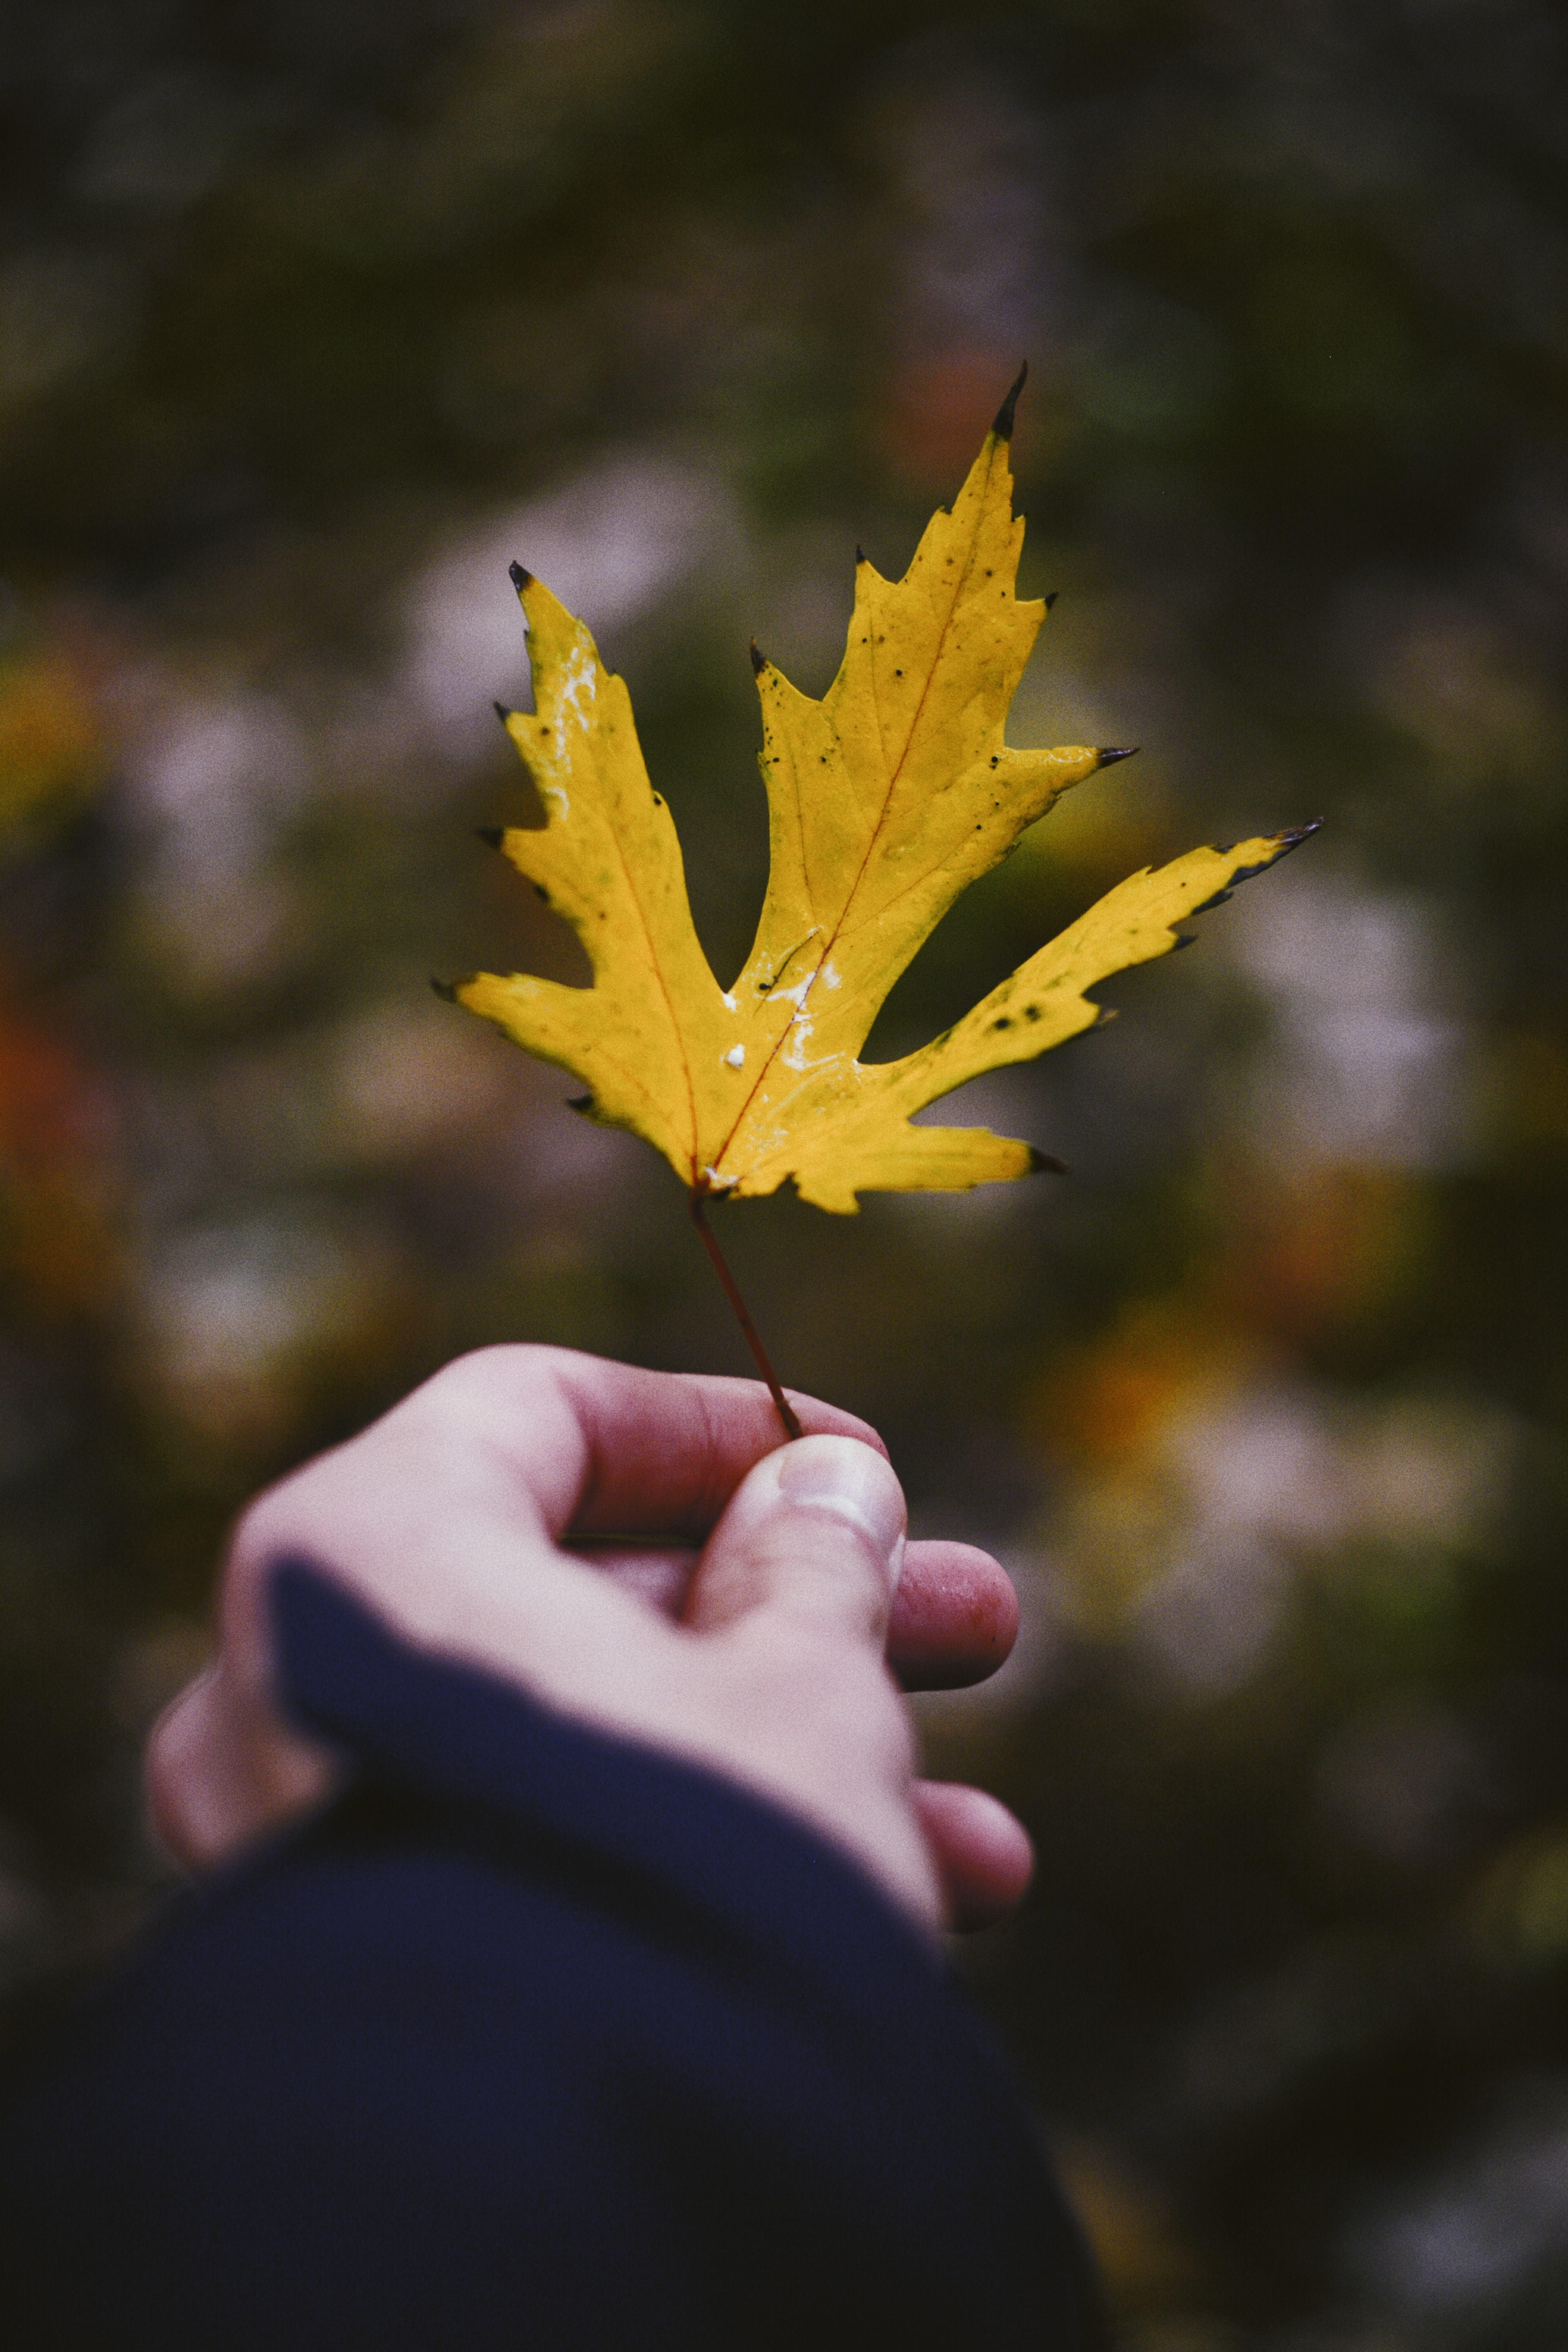 selective focus photography of person holding yellow leafed plant